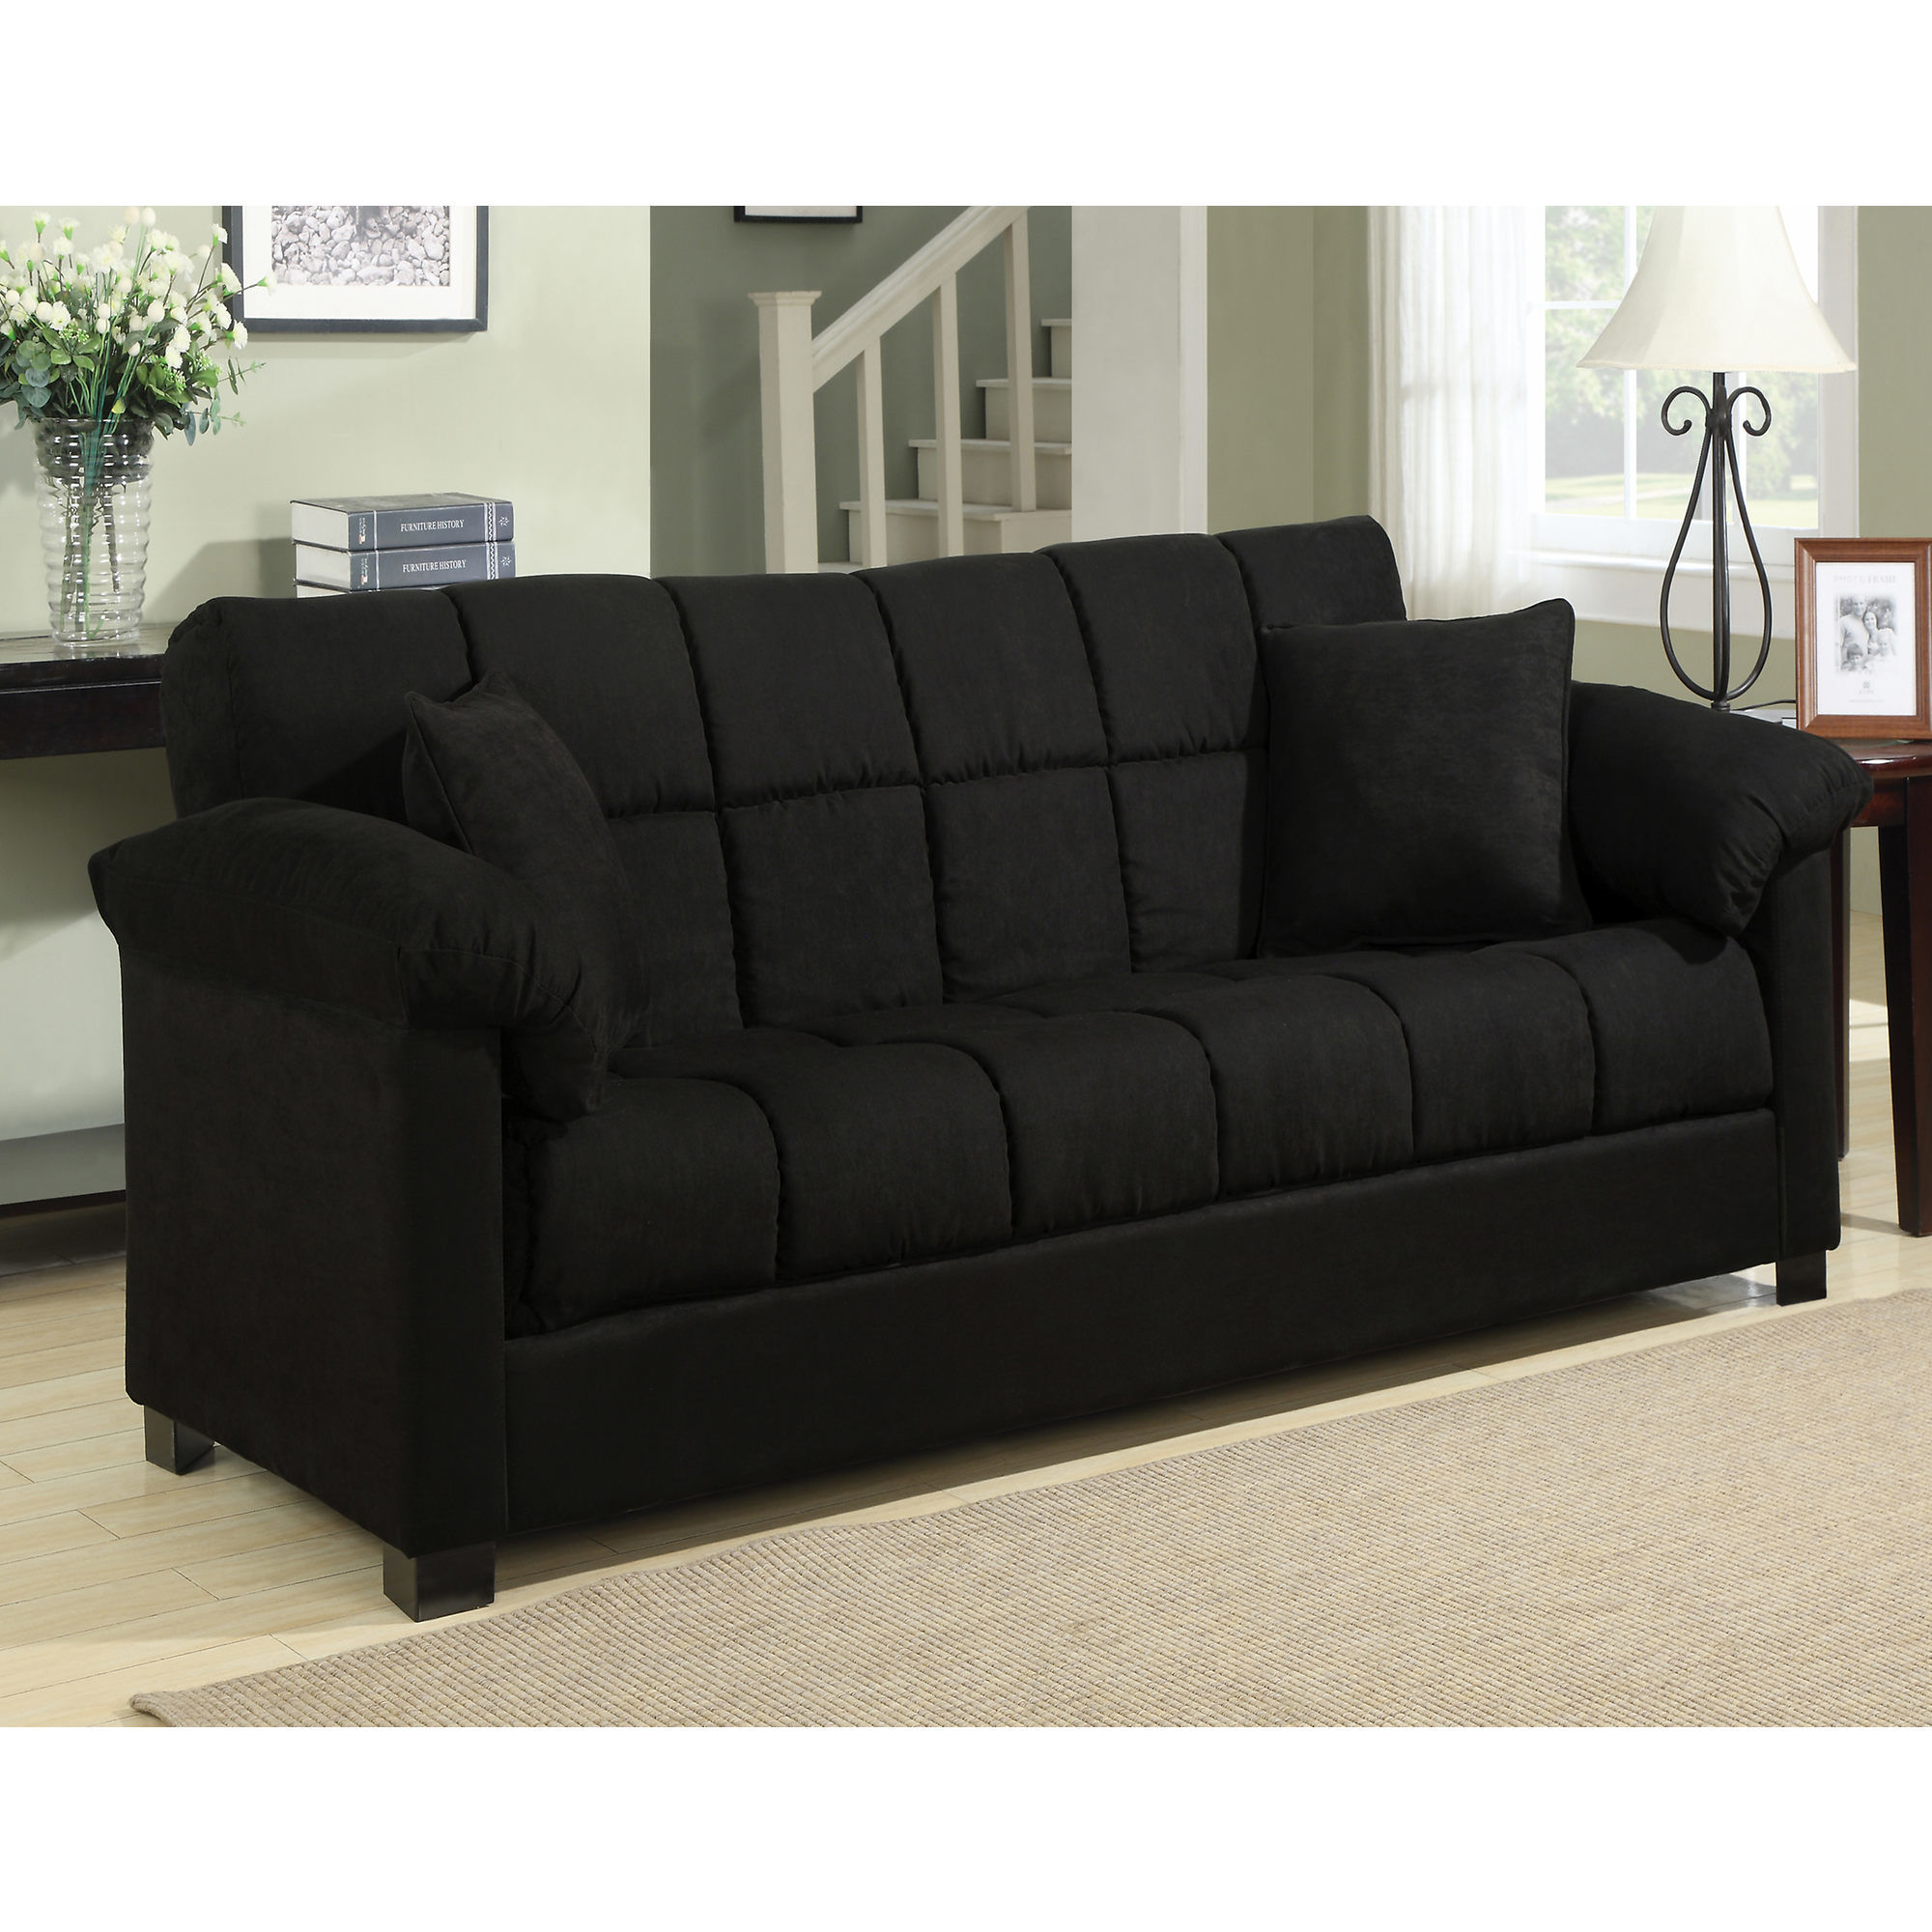 awesome convertible sleeper sofa gallery-Wonderful Convertible Sleeper sofa Photo